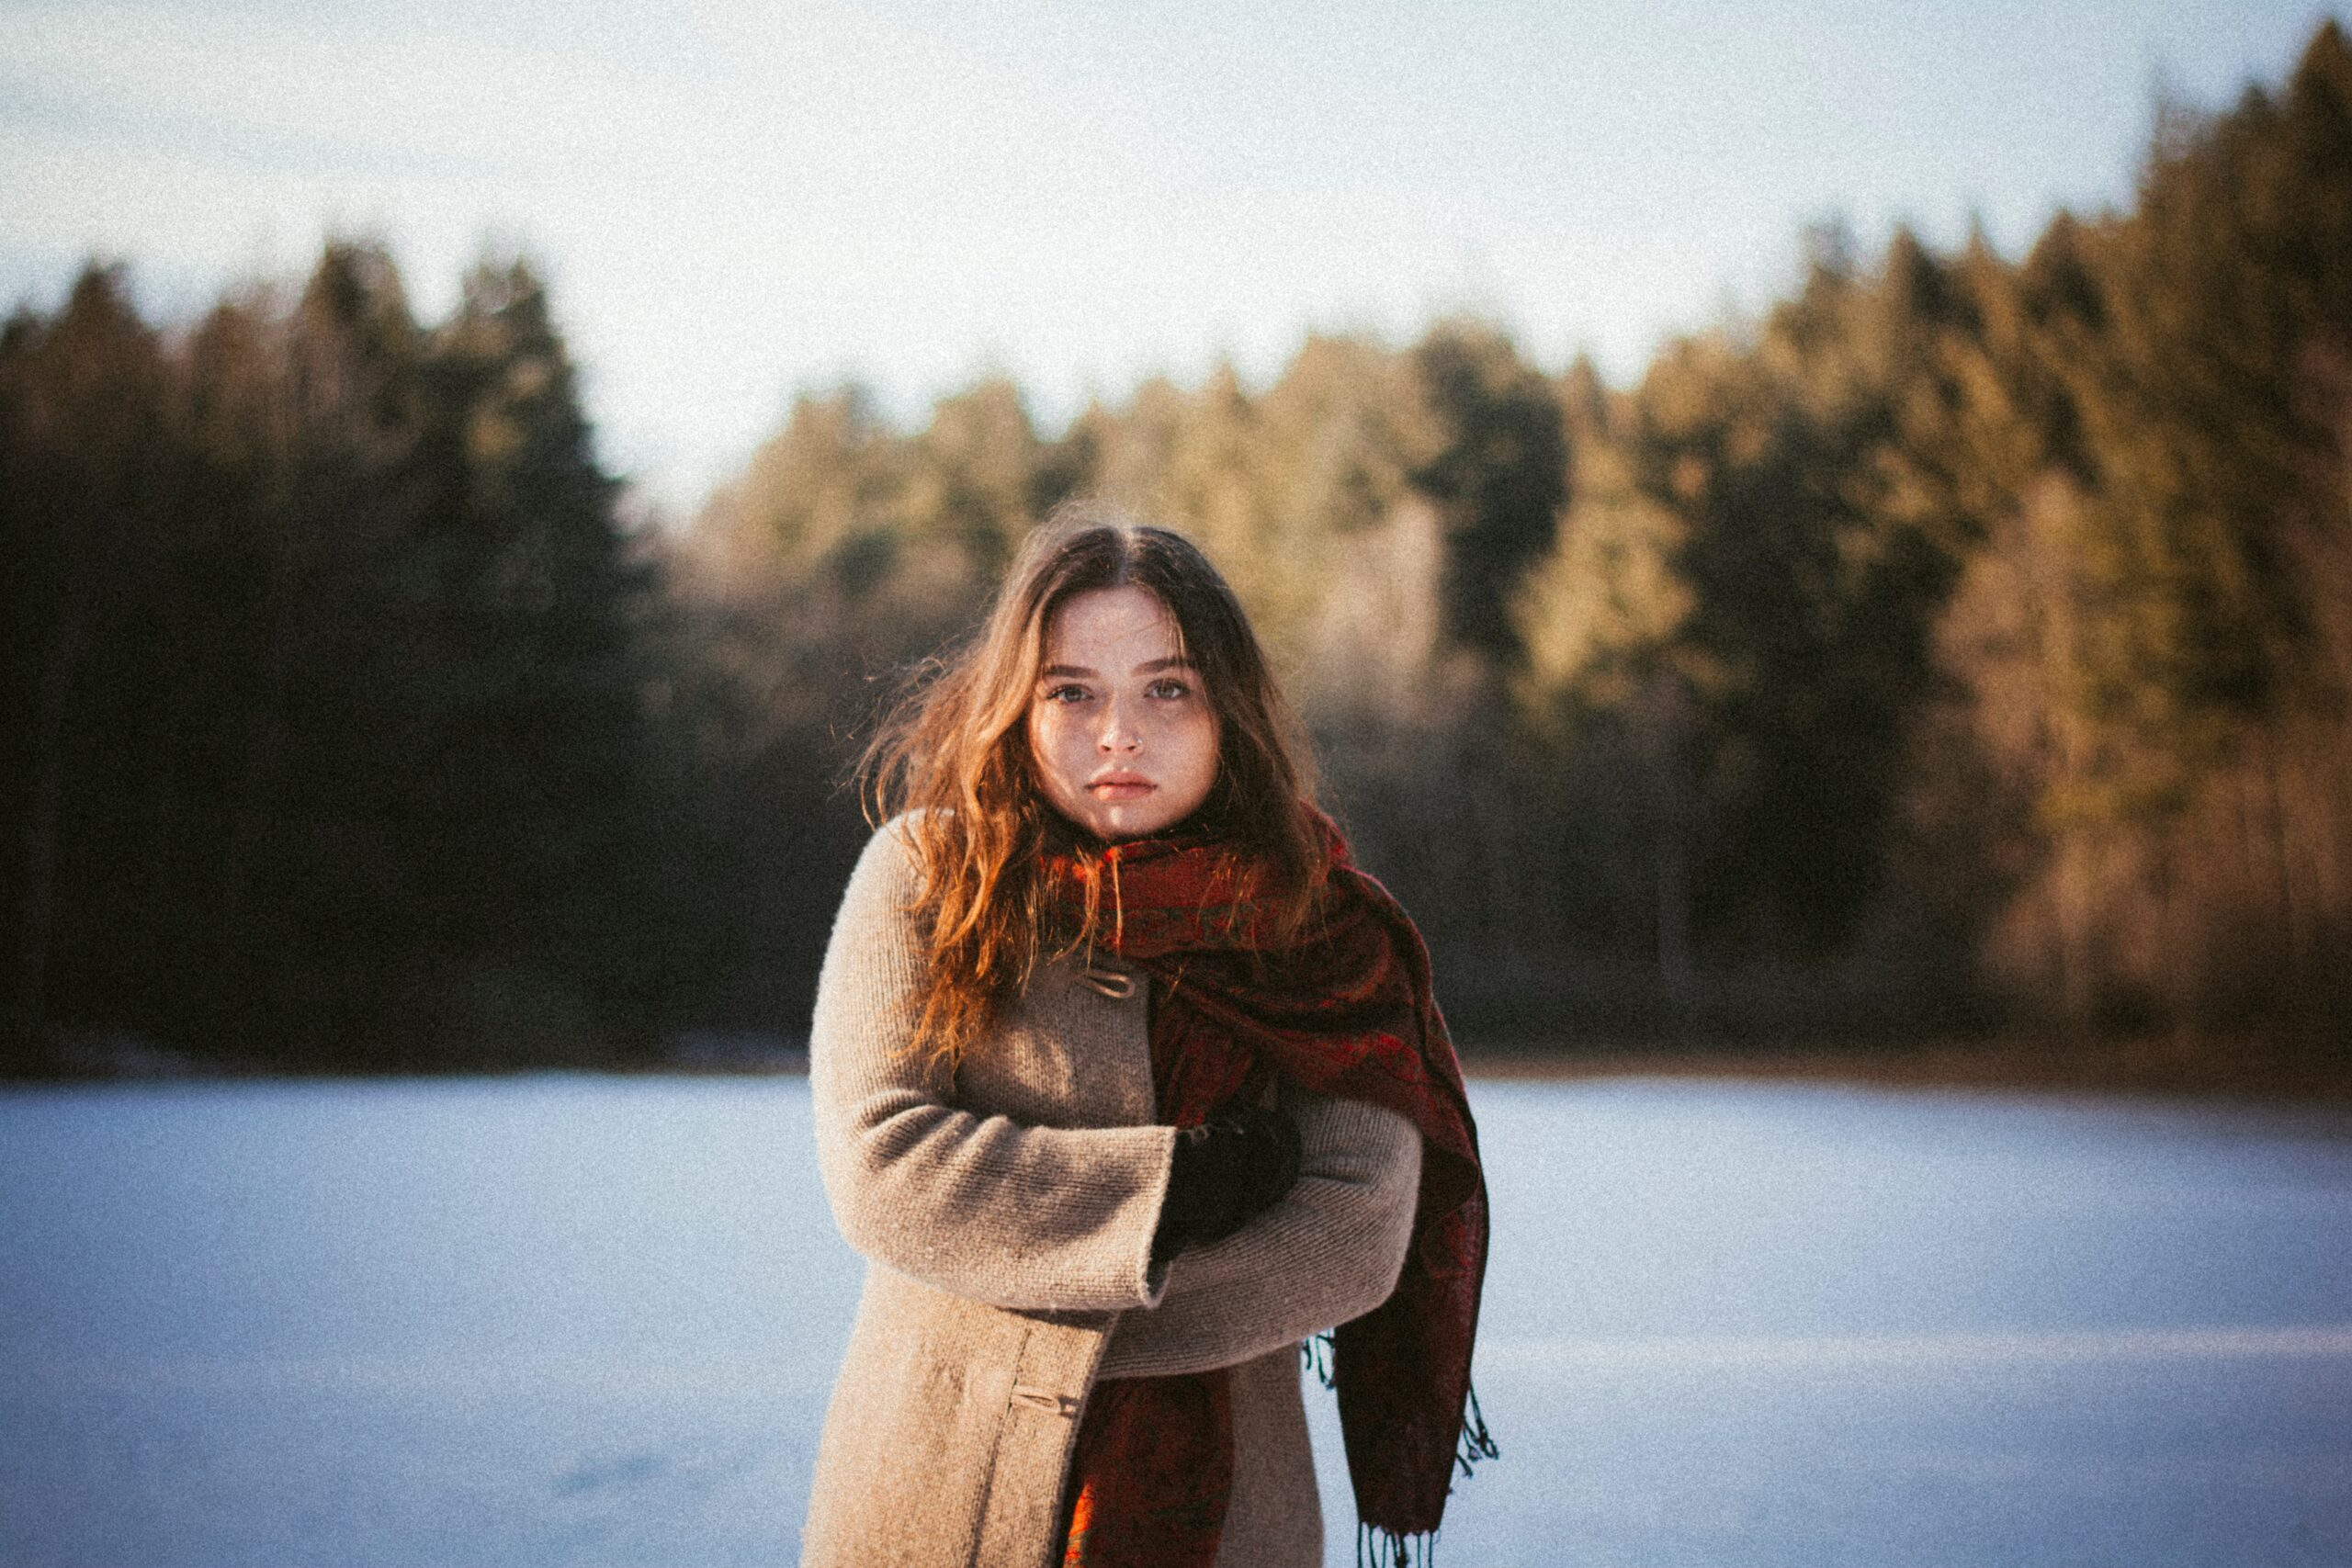 Does Your Thyroid Have You Feeling Extra Chilly And Dry This Winter?